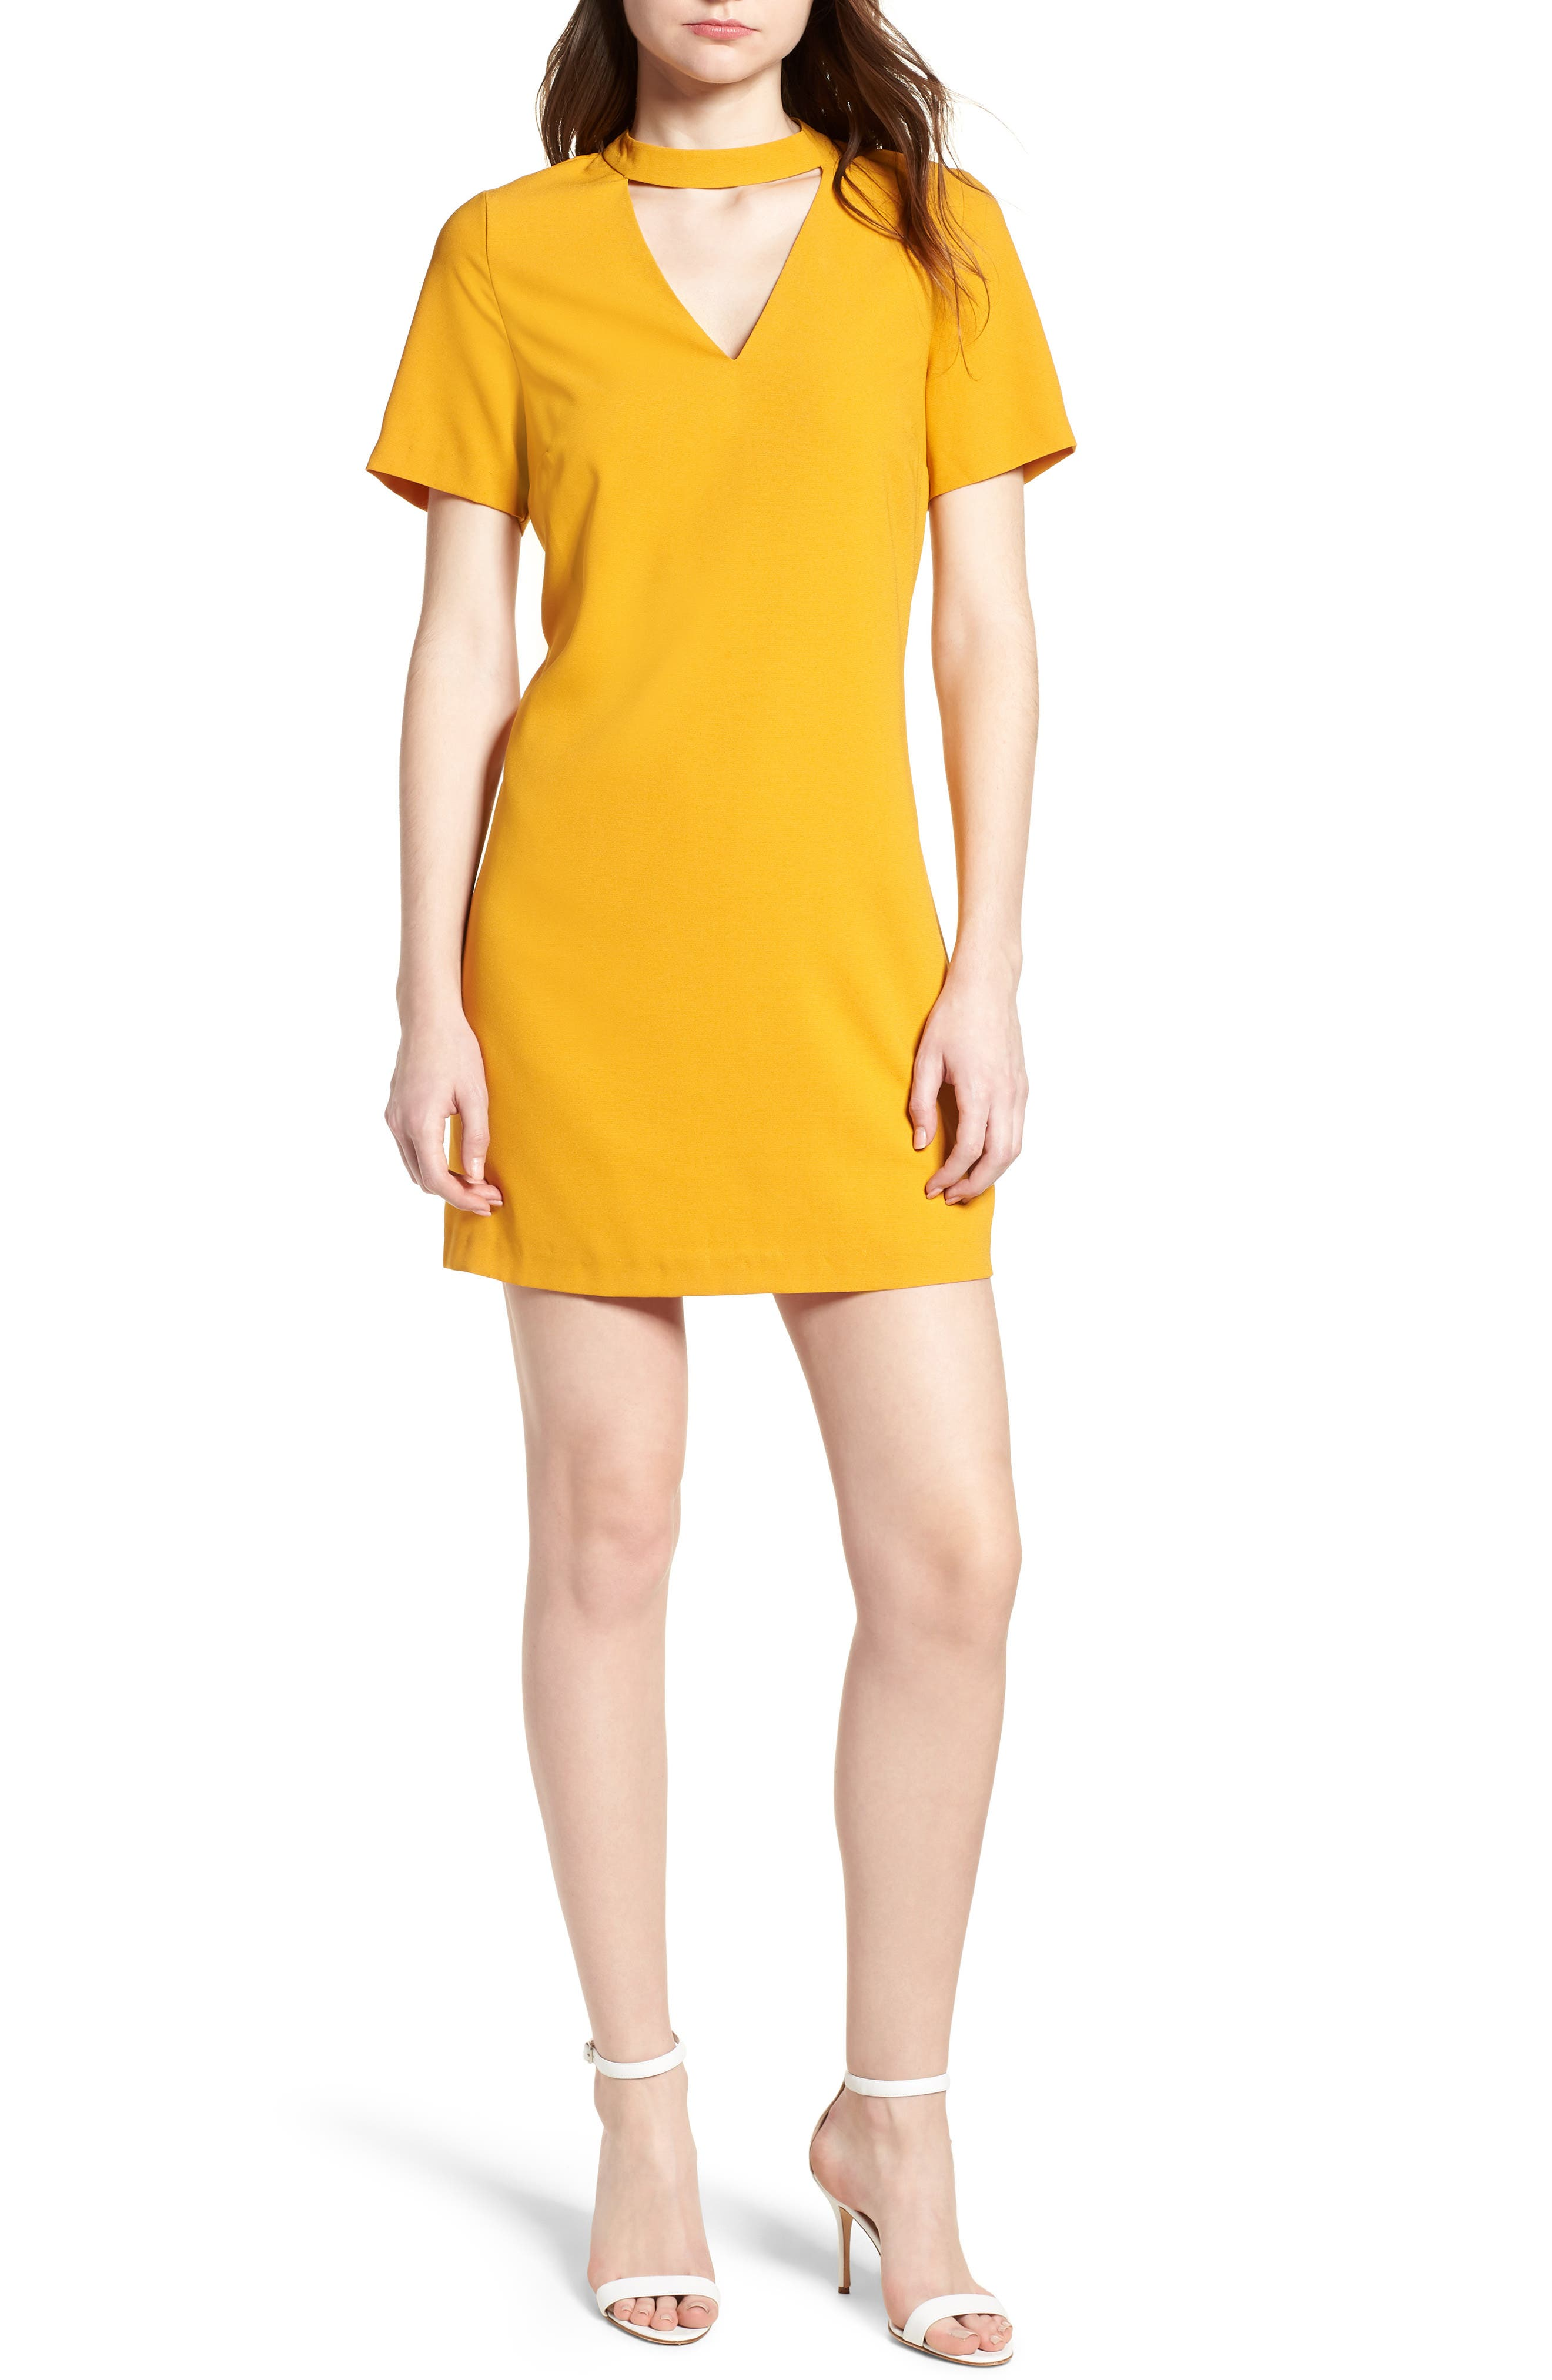 Bishop + Young Sasha Shift Dress,                             Main thumbnail 1, color,                             Mustard